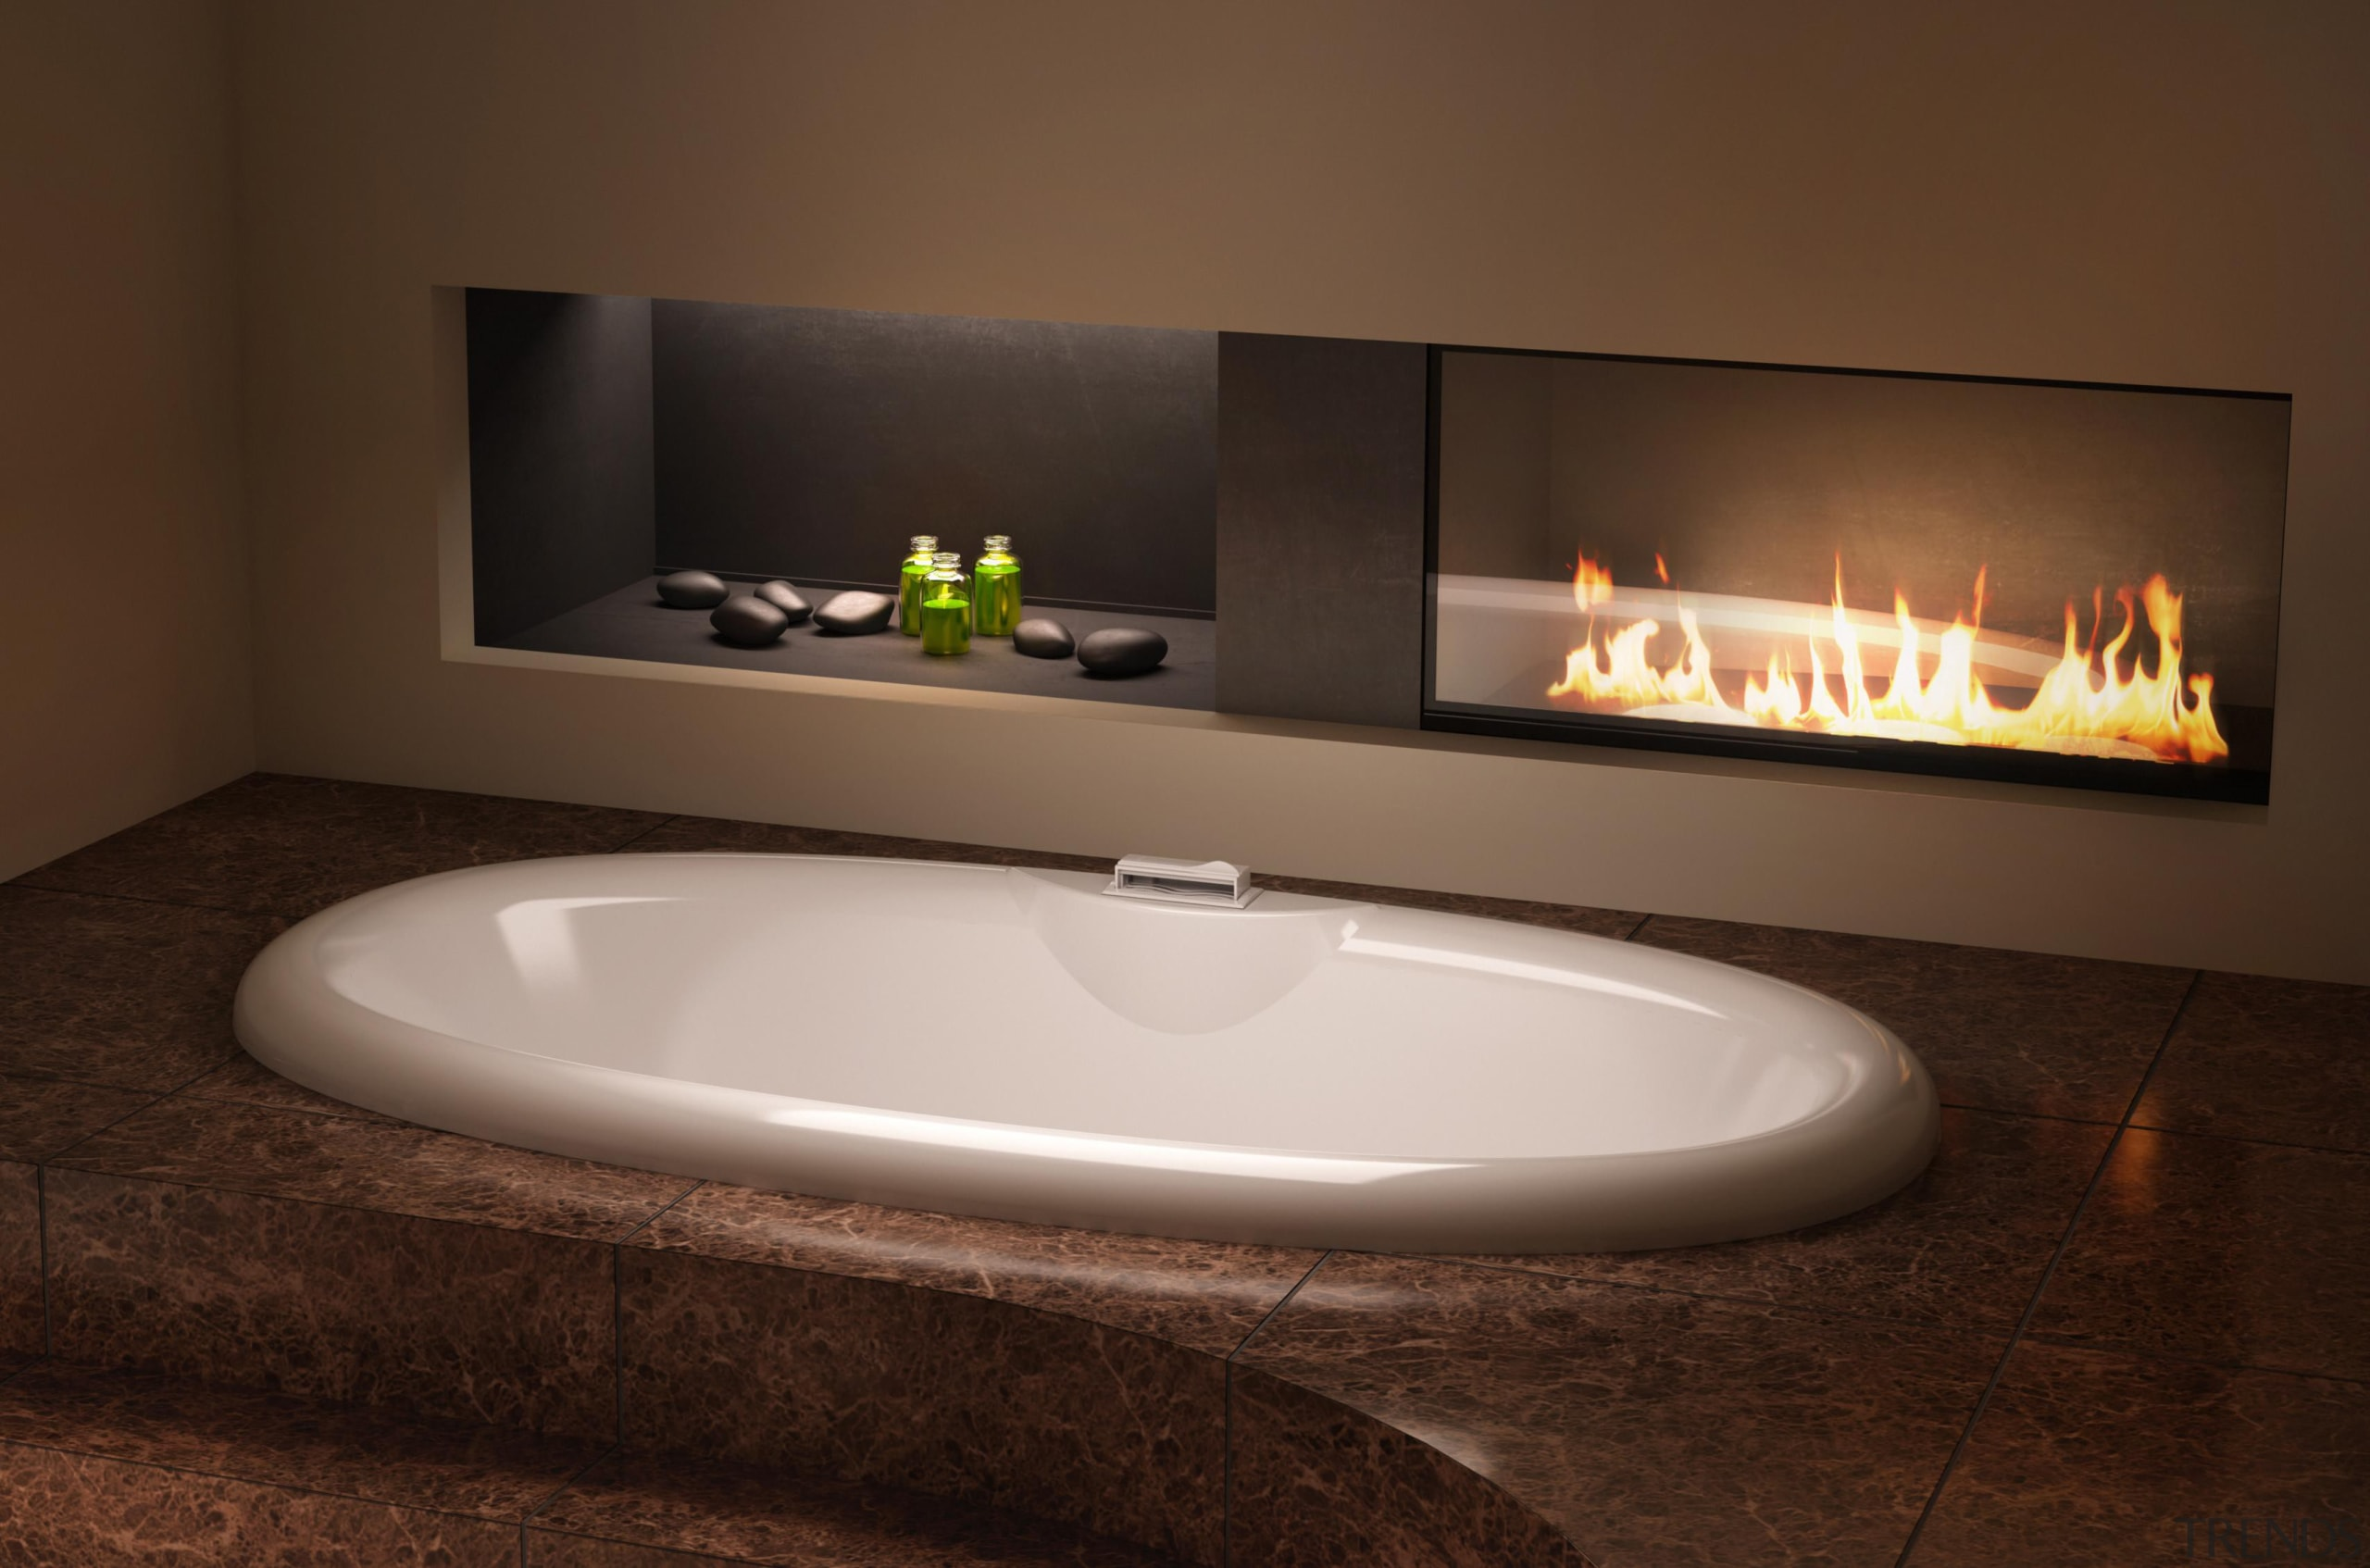 The Aromacloud diffuses a mist of essential oils hearth, product design, sink, brown